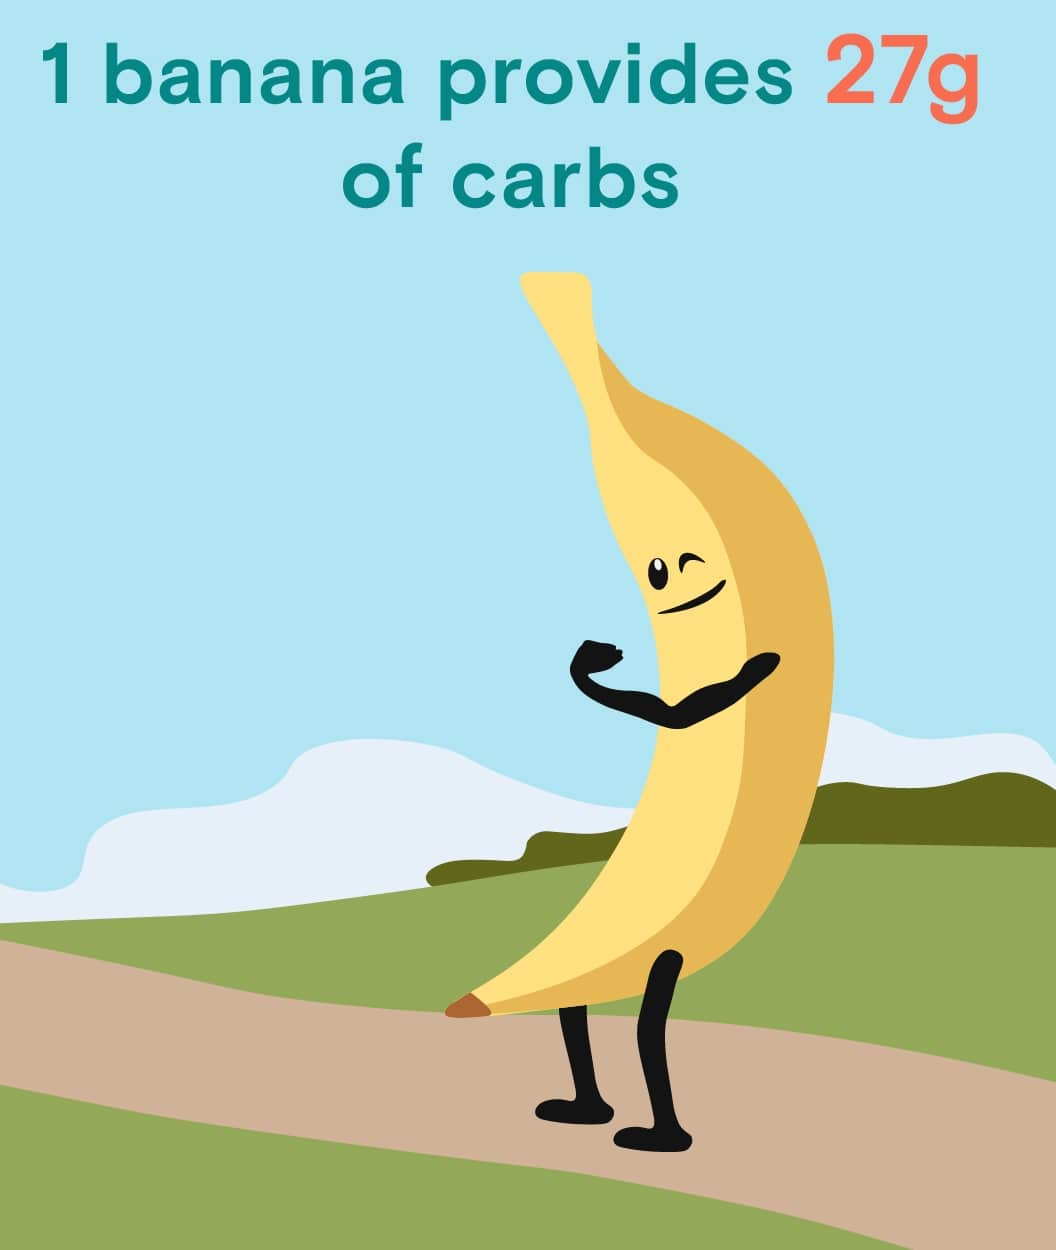 One banana provides 27g of carbs